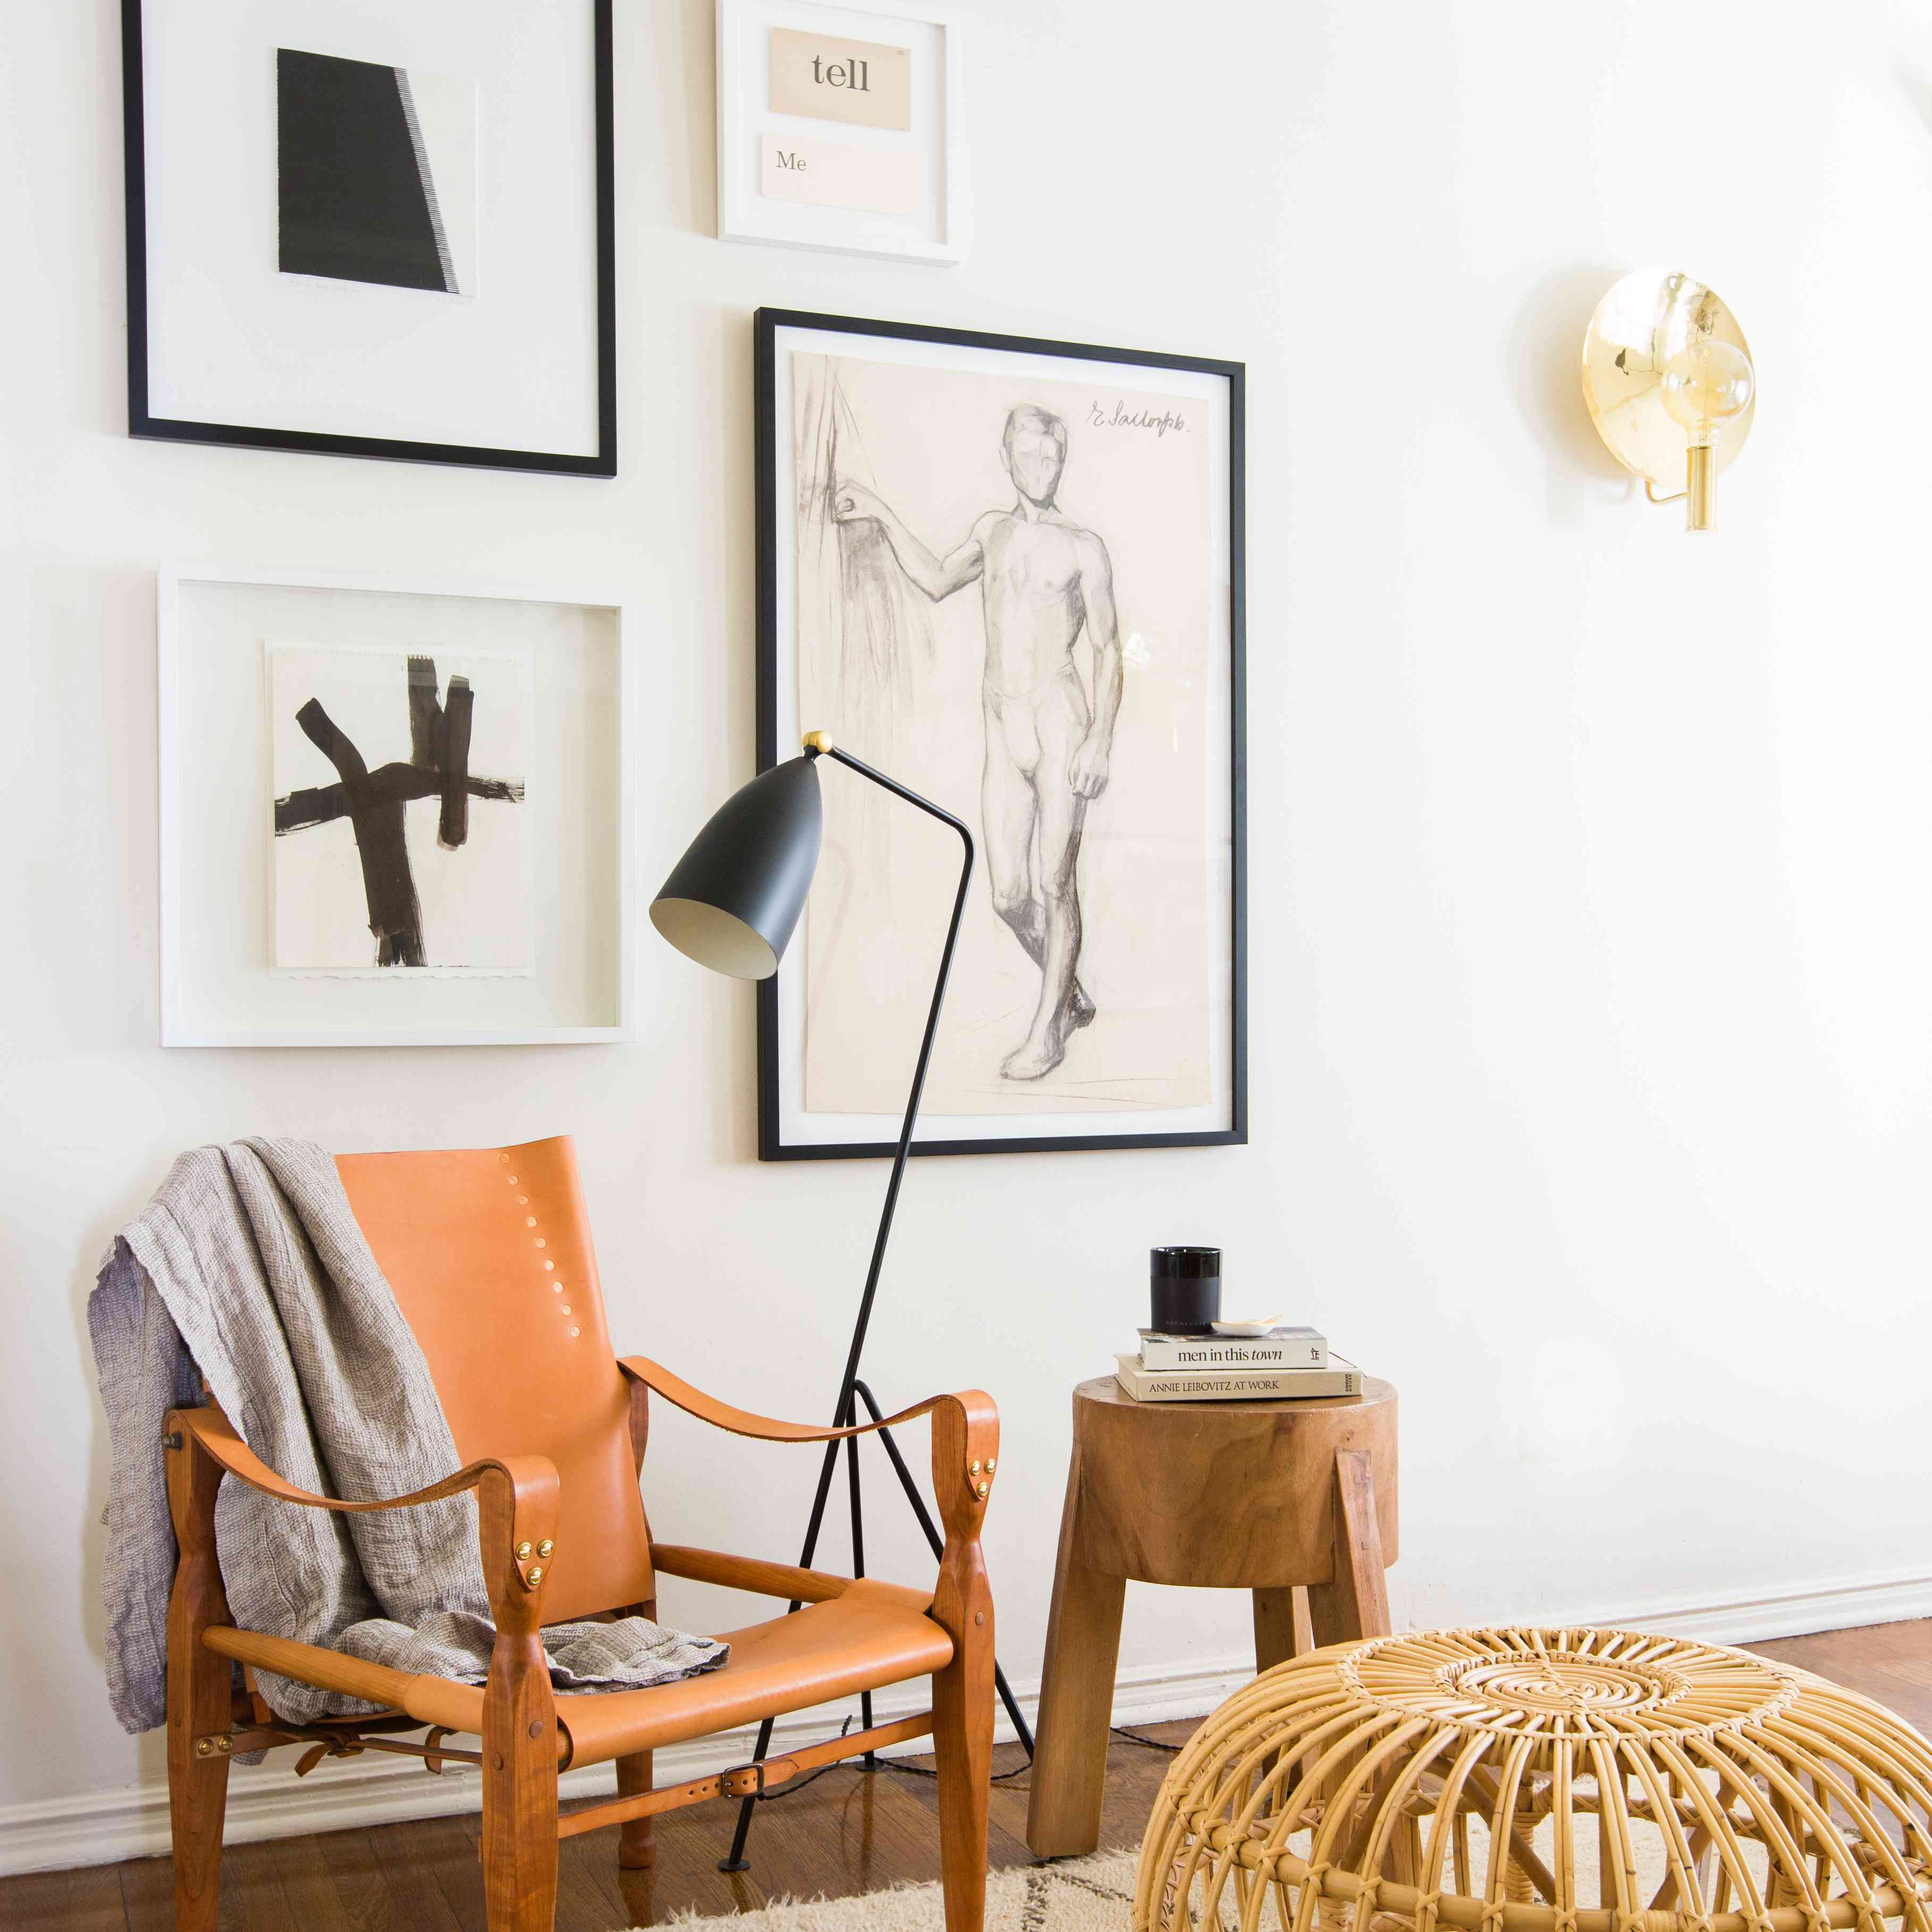 Bedroom with orange accent chair